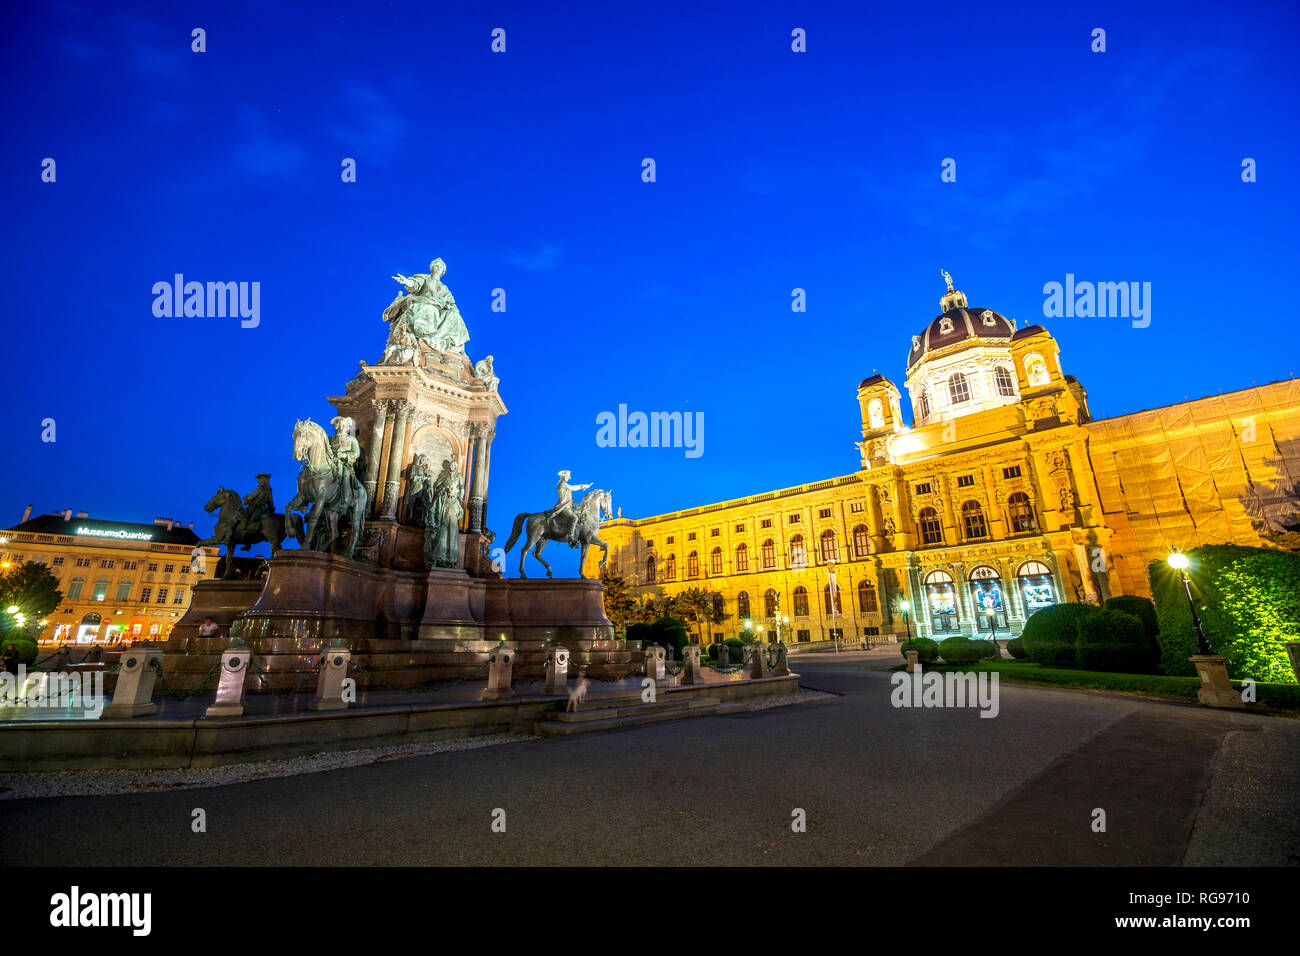 Austria, Vienna, Maria-Theresien-Platz, Museum of Art History and Museum of Natural History - Stock Image